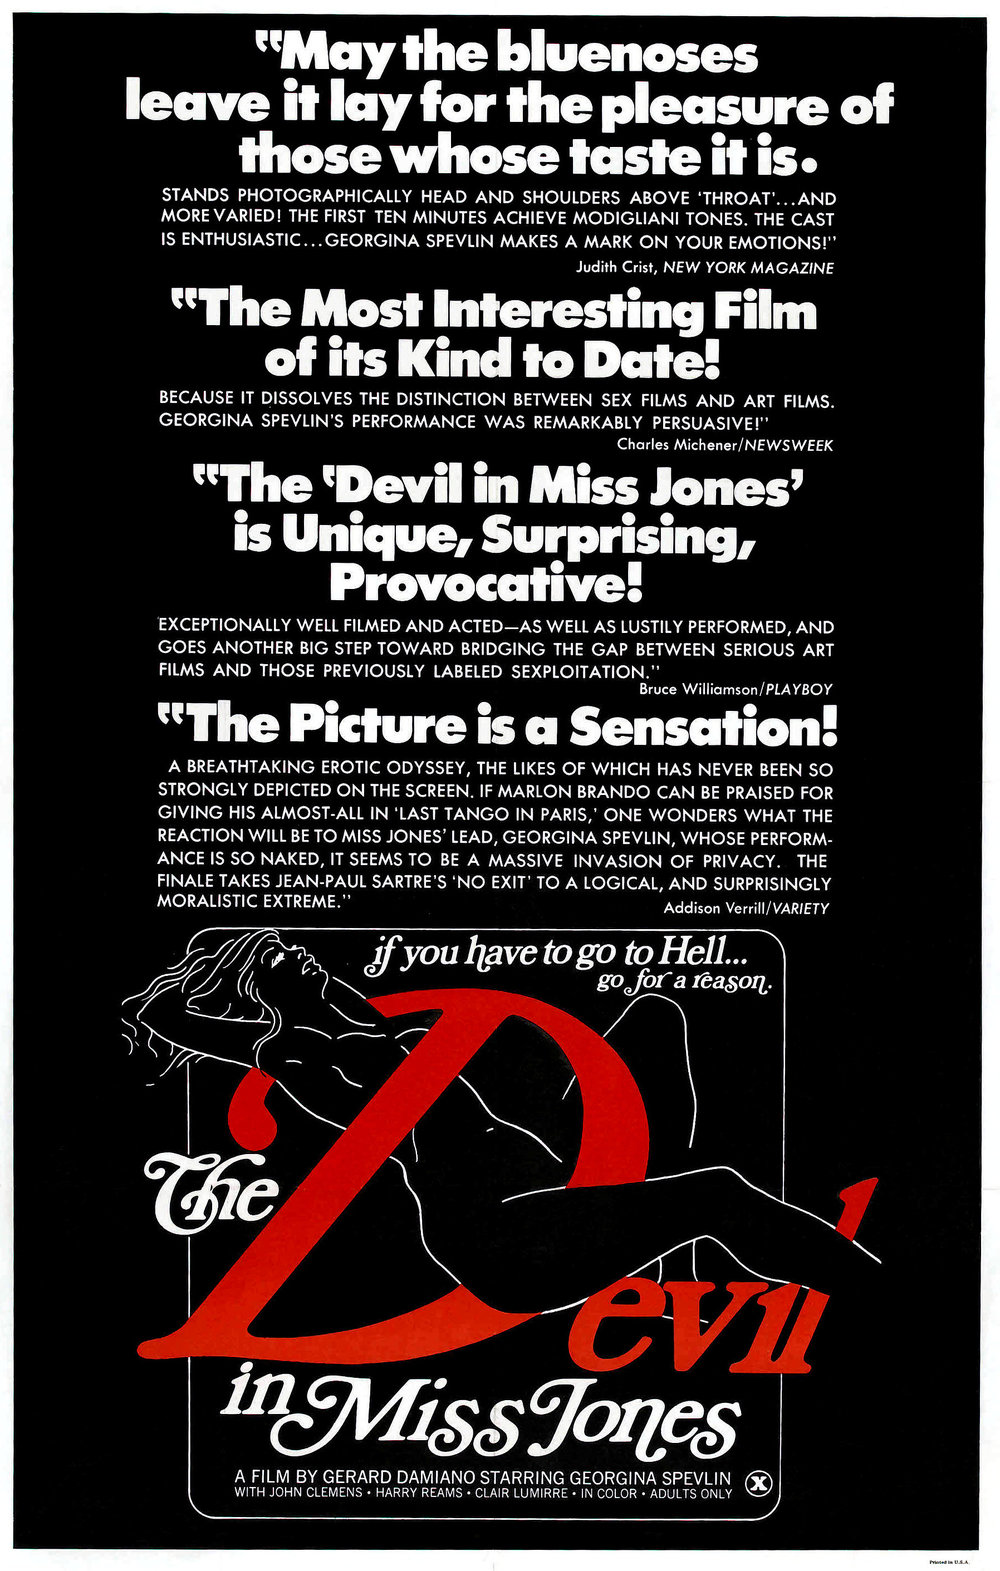 Devil_in_miss_jones_poster.jpg